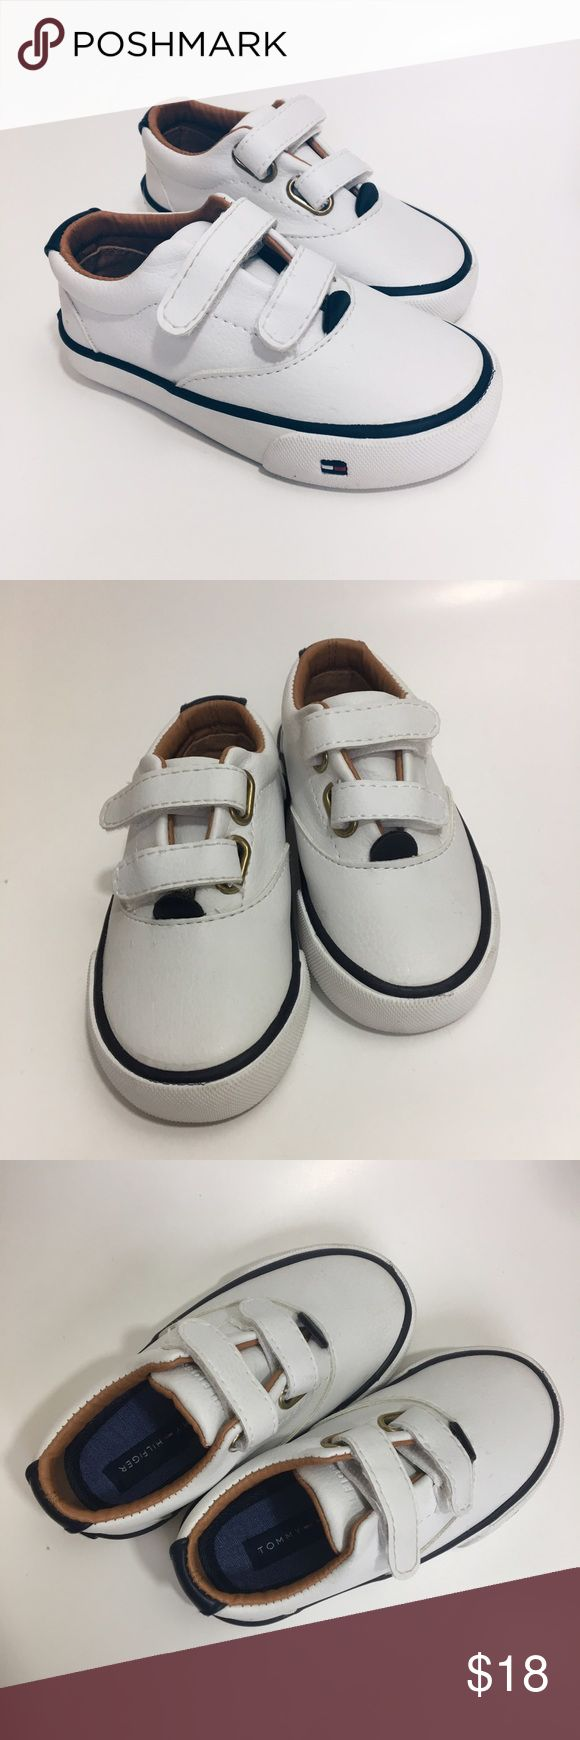 "BOGO FREE ⭐️ Tommy Hilfiger White Velcro Sneakers NWOT White sneakers with navy blue accent & brown inner lining makes these sneakers adorable for many outfits - for boys or girls! Velcro fasteners. Size 6 - 6"" from front to back of bottom sole. Tommy Hilfiger Shoes Sneakers"